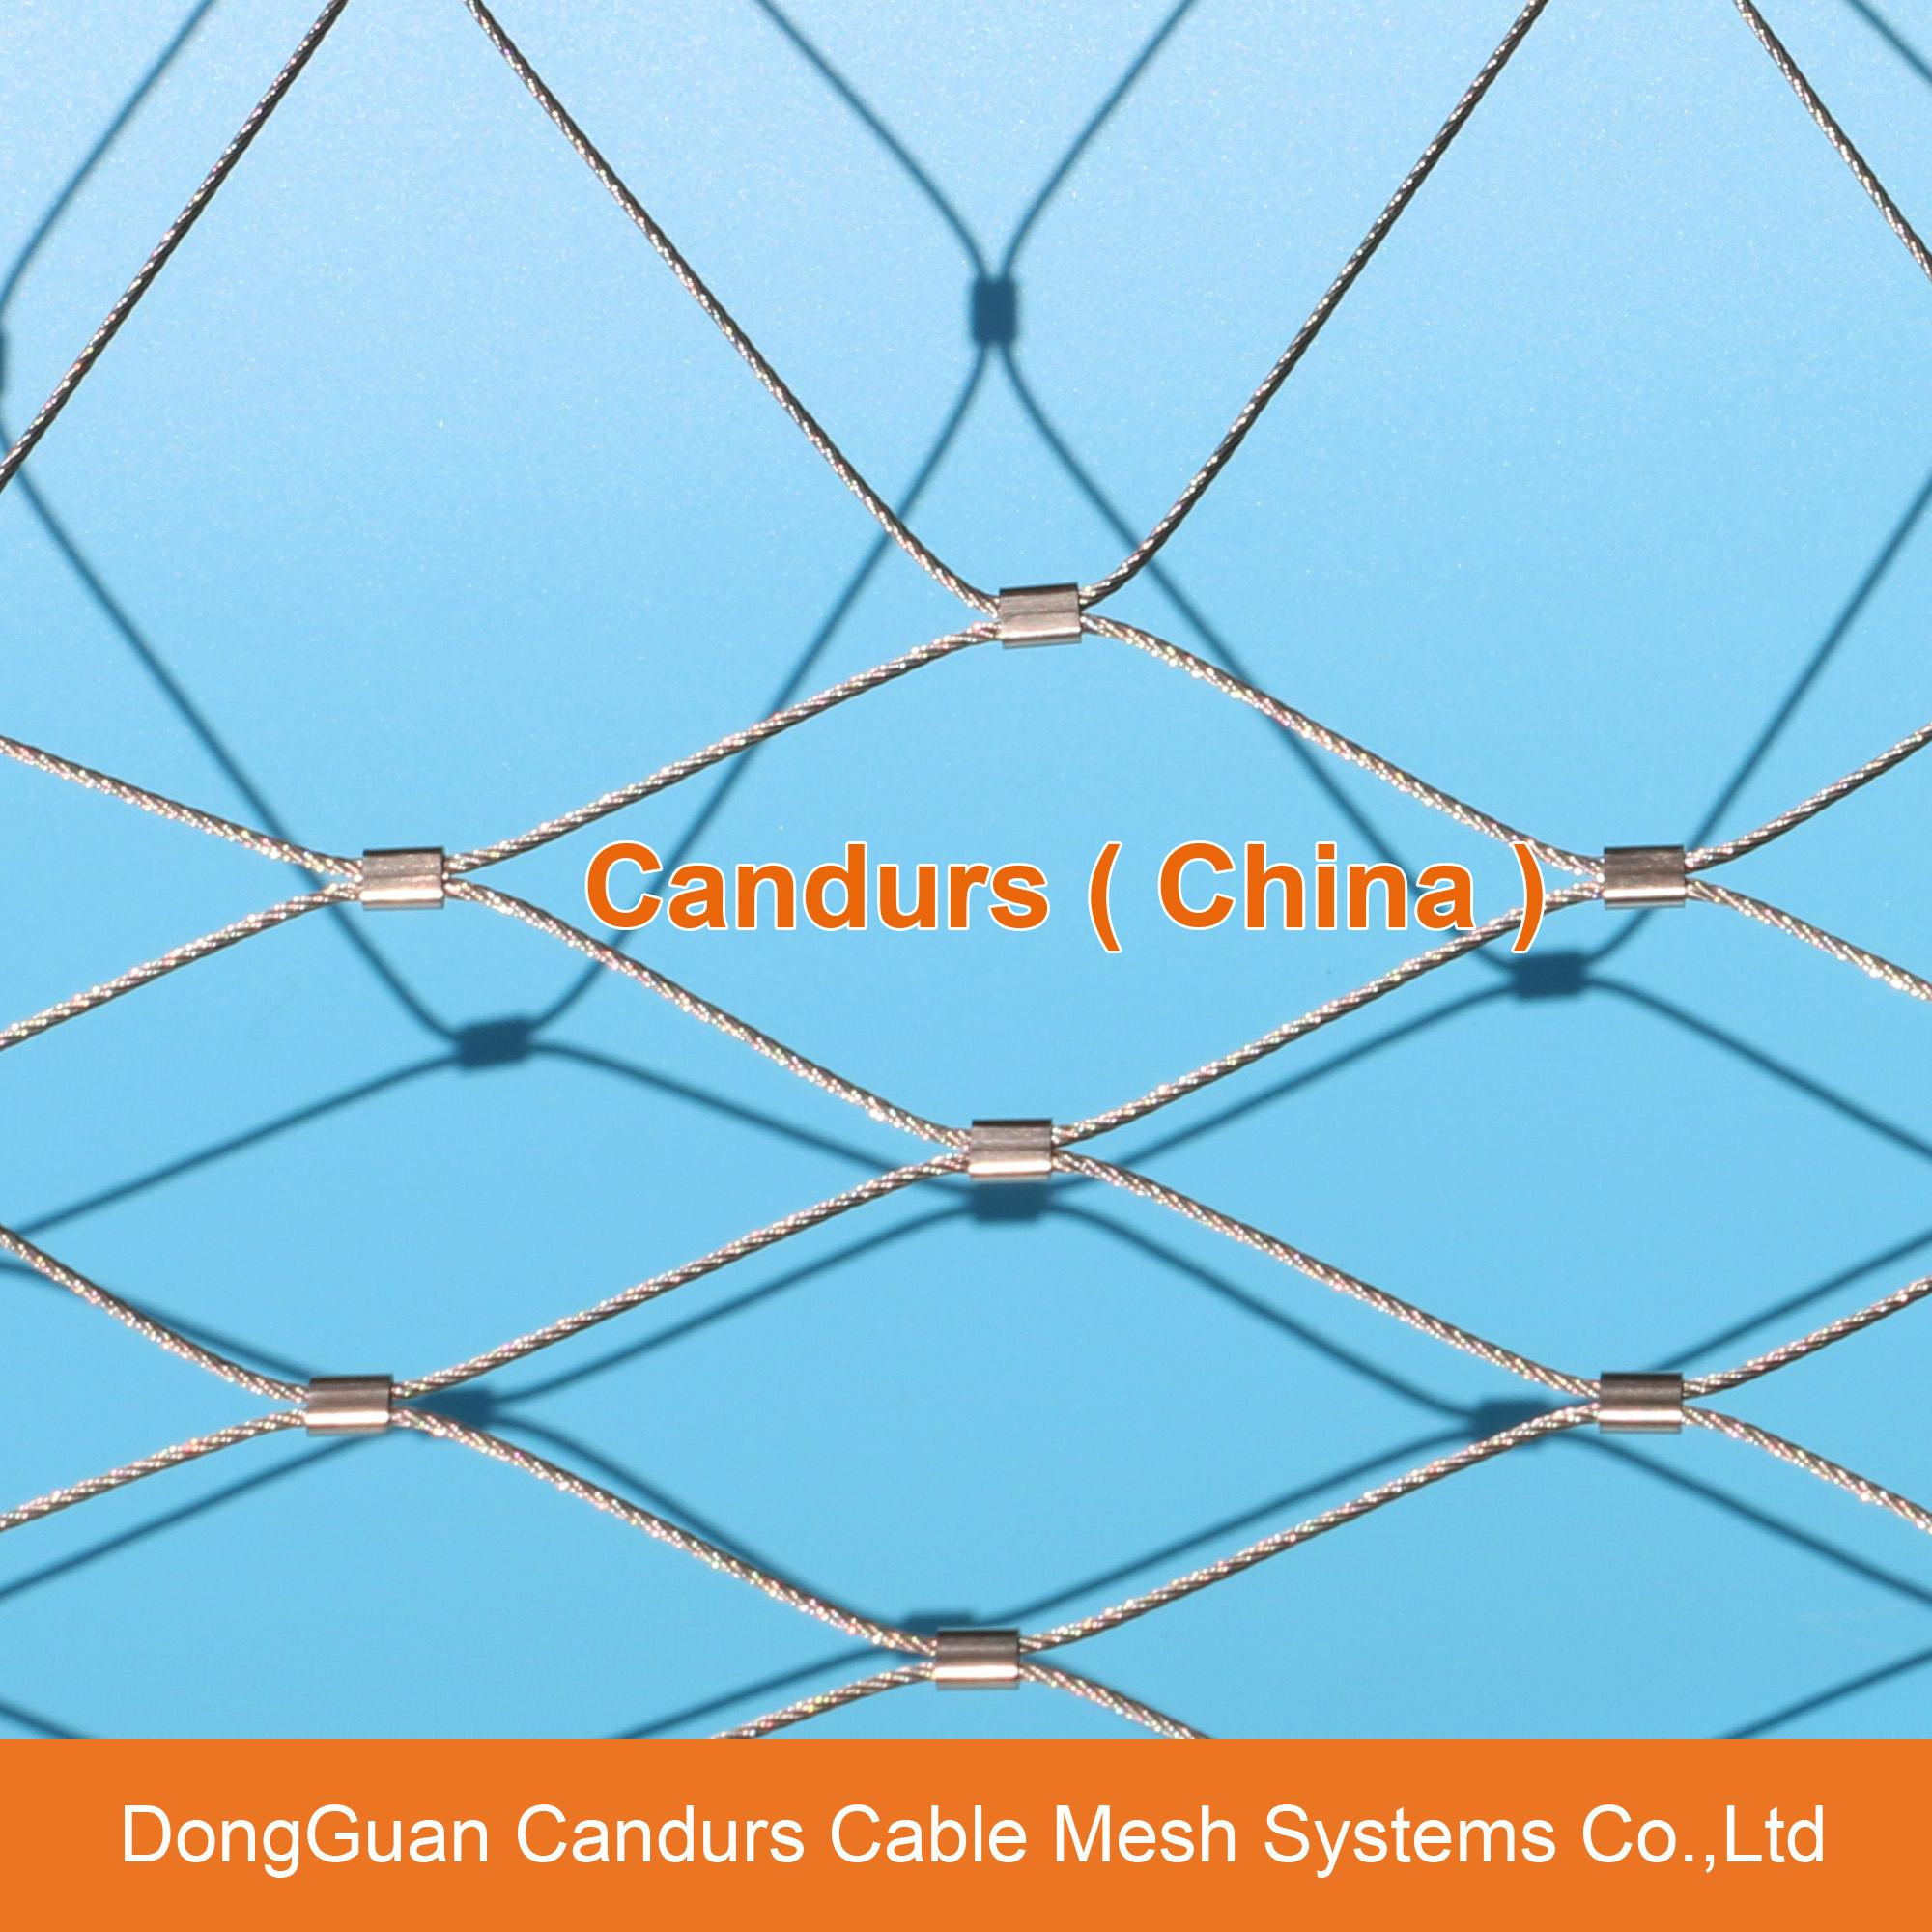 Stainless Steel Zoo Rope Mesh Enclosure - DecorRope - Candurs (China ...